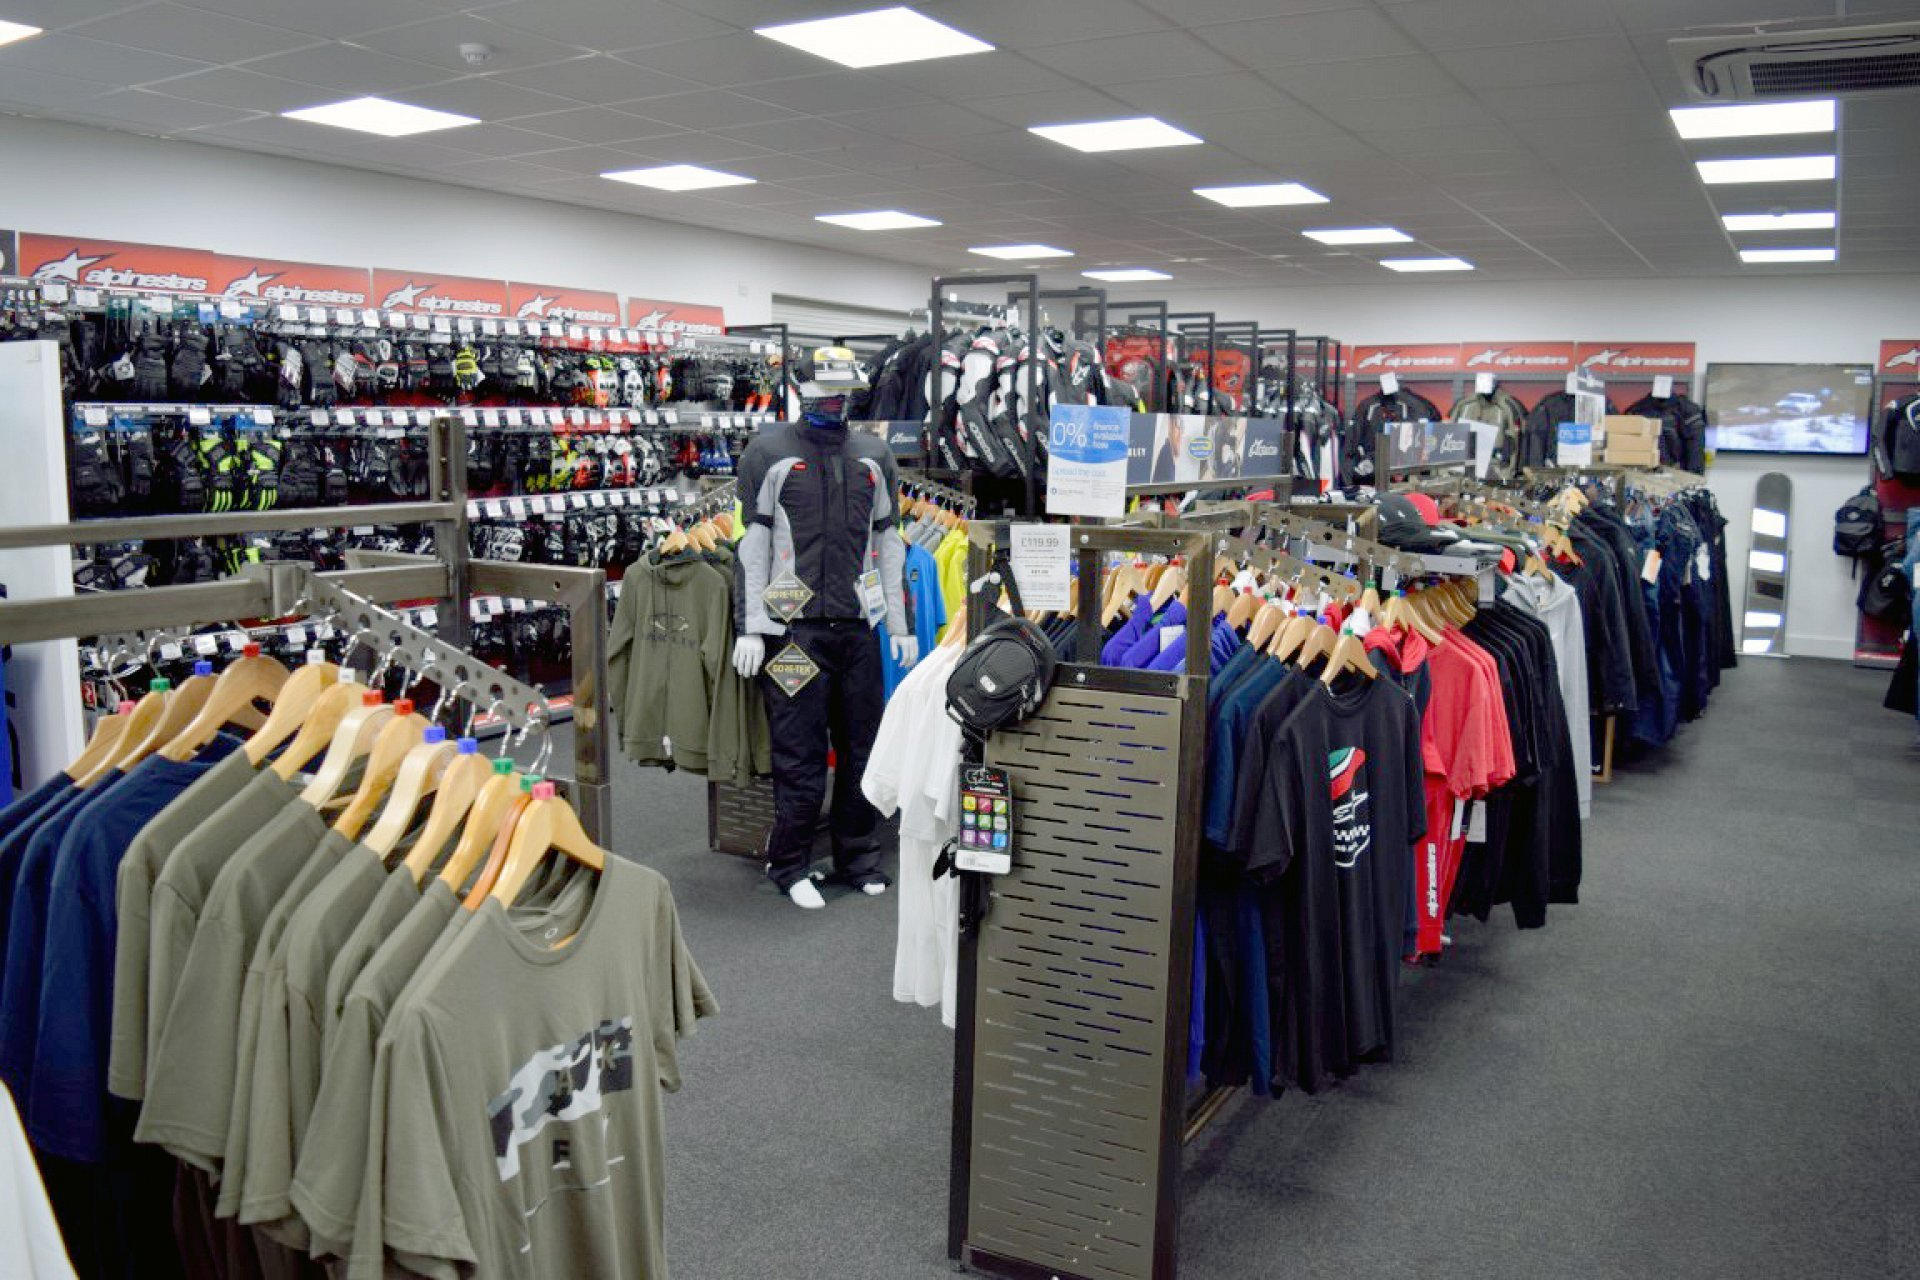 Motorcycle Dealer, Used and New bikes for sale, Clothing, Helmets